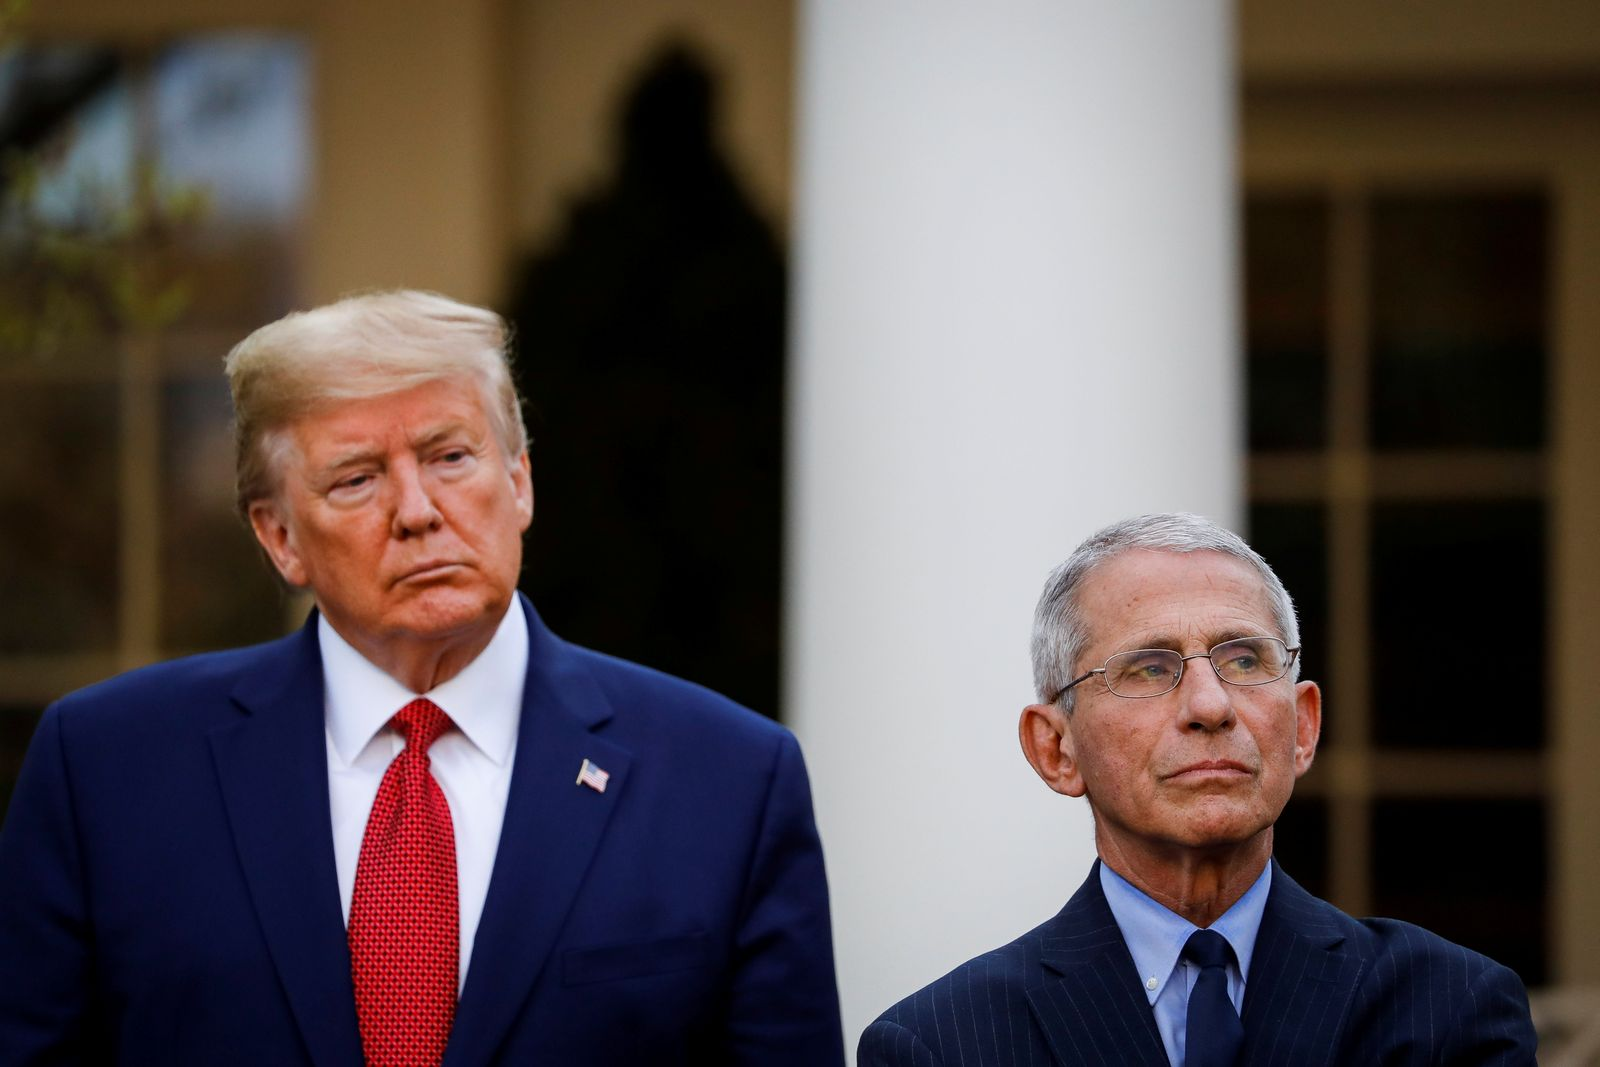 Donald Trump / Anthony Fauci / Coronavirus